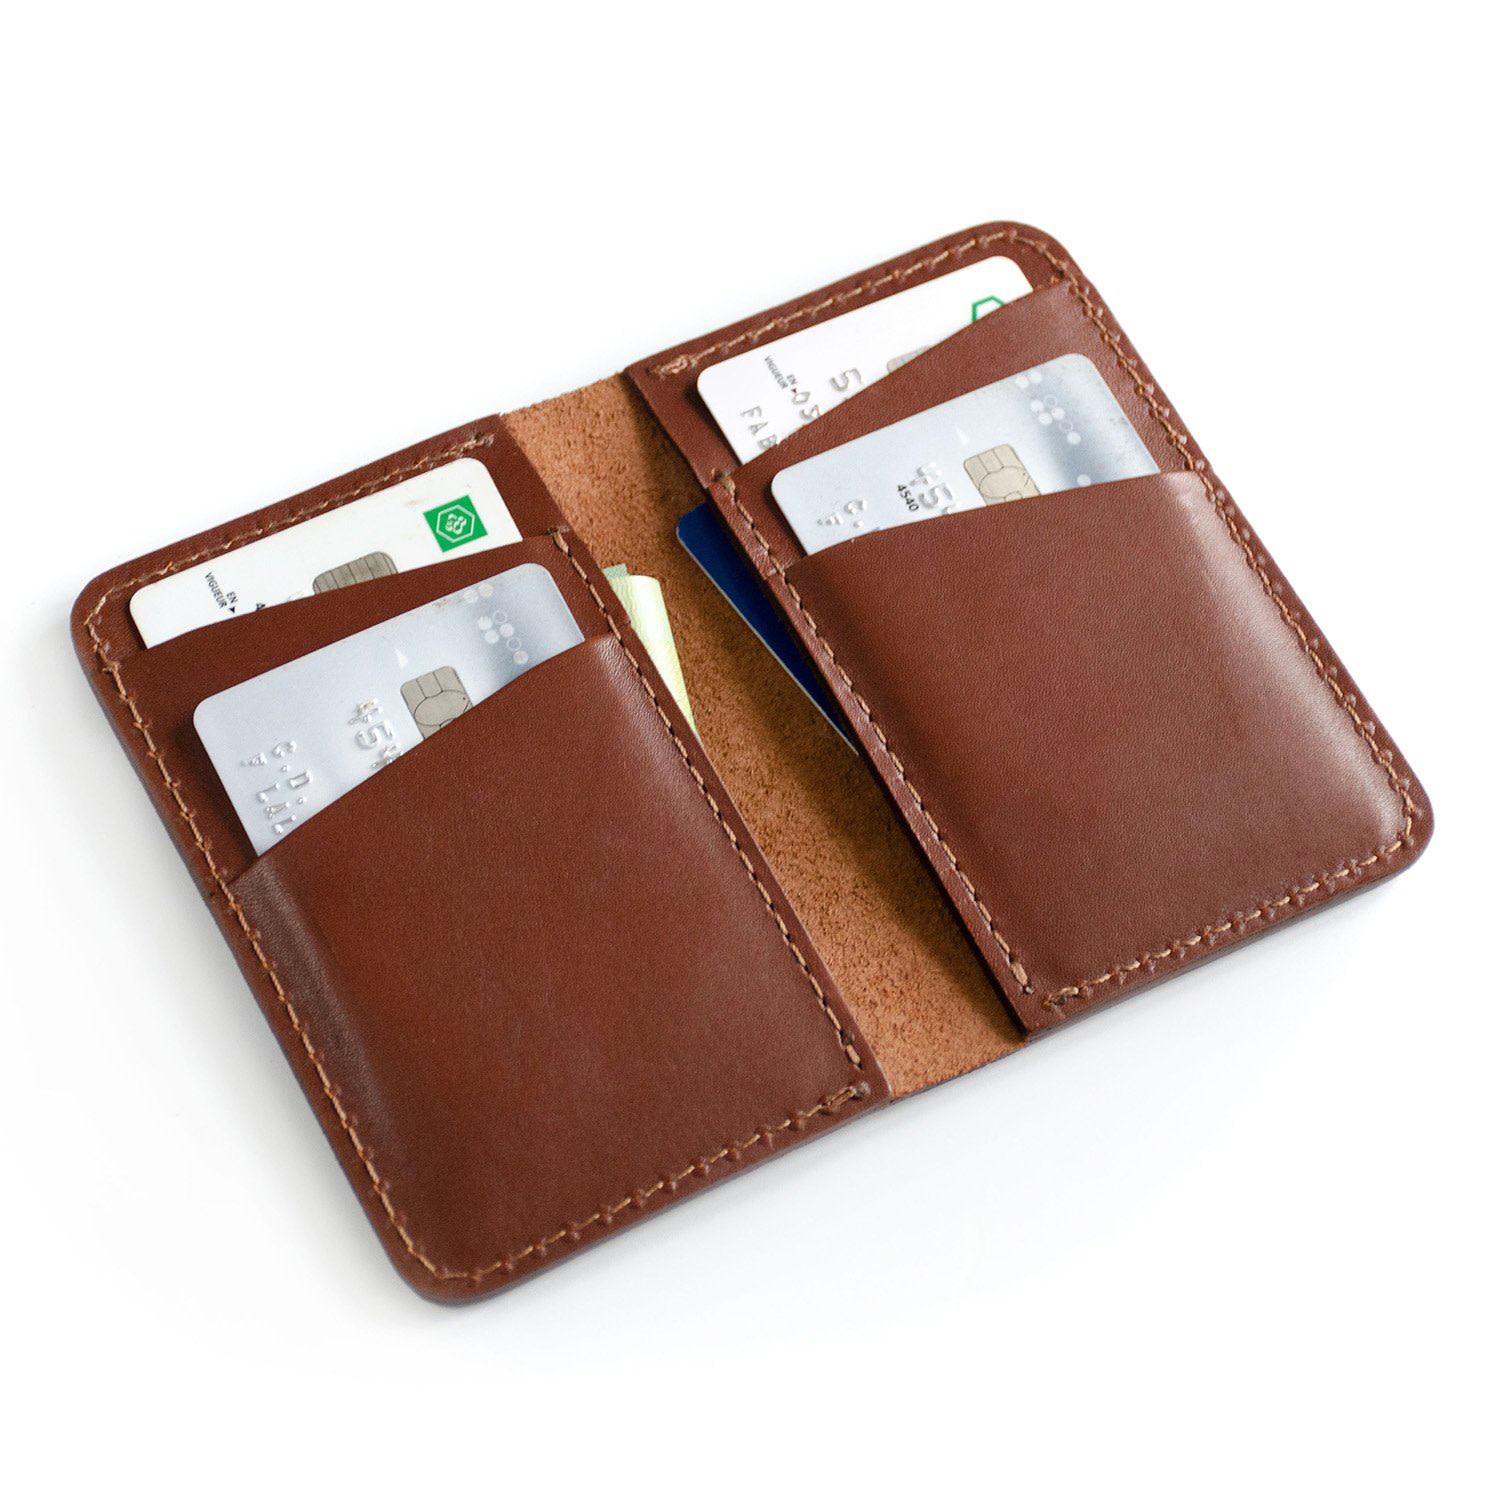 Fab Fab - Vertical leather wallet - Brown